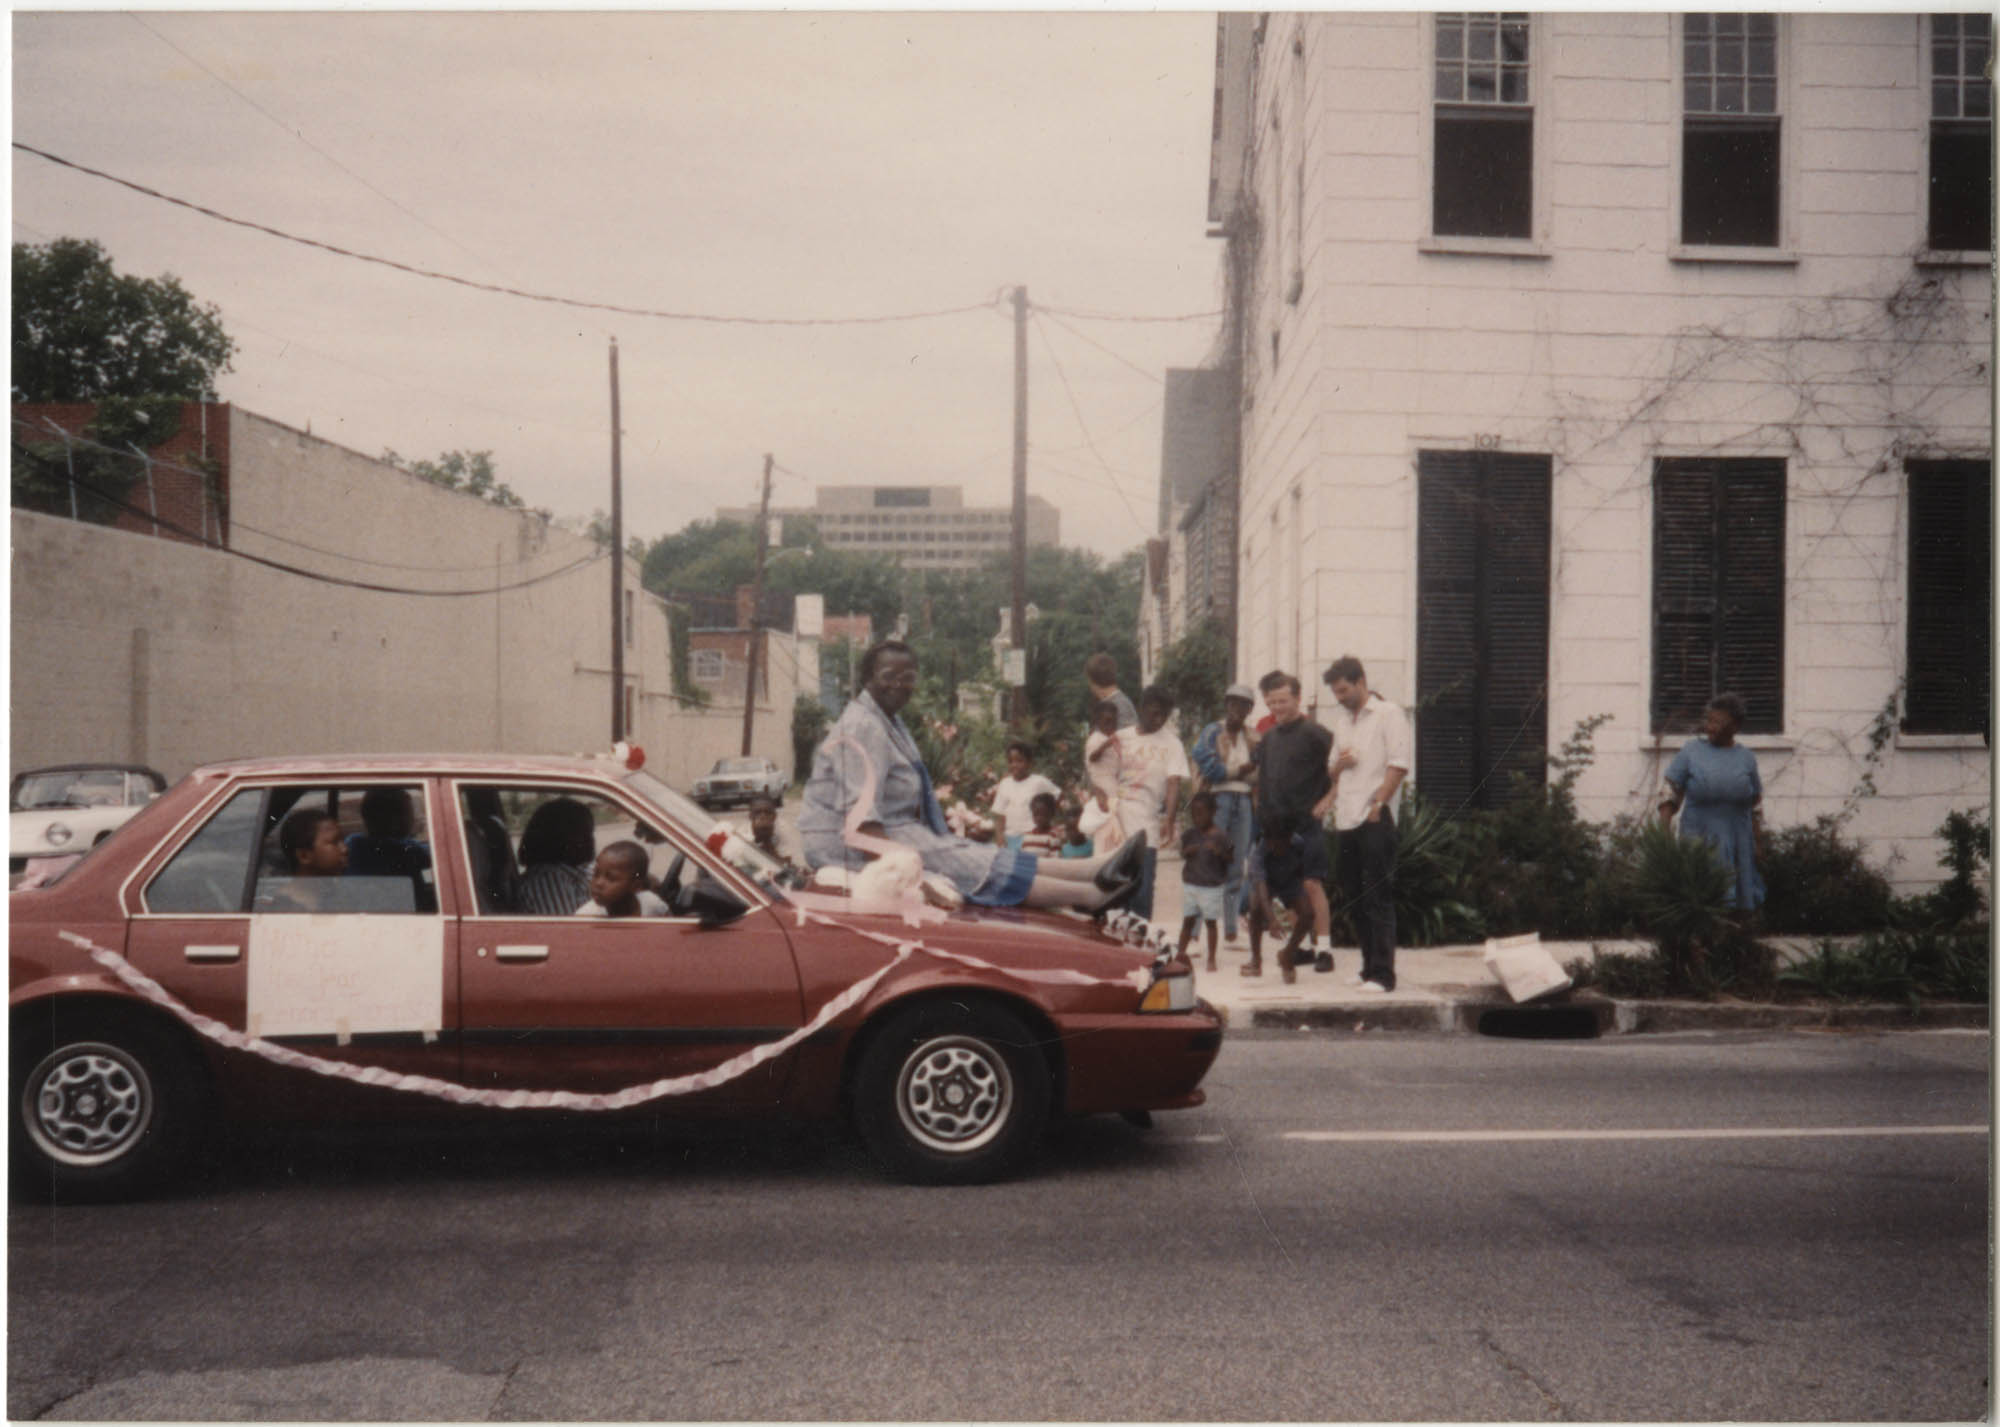 Photograph of a Woman Sitting on the Hood of a Car